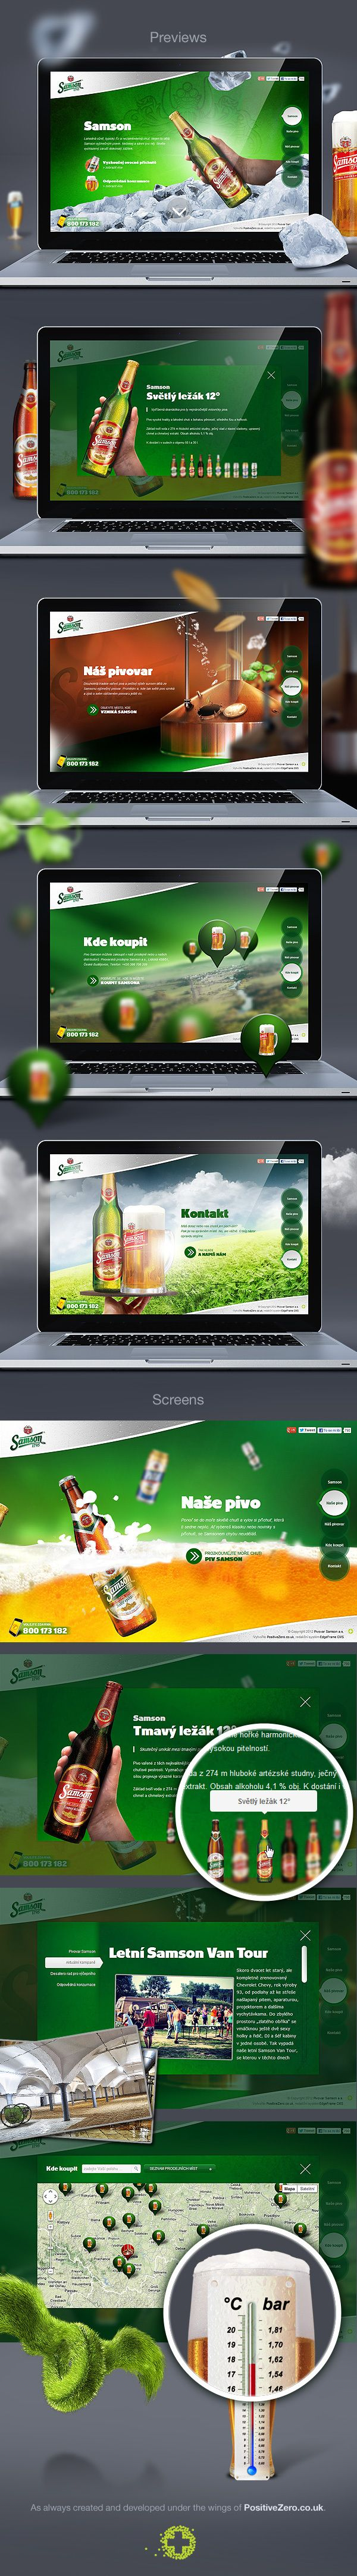 Samson brewery   ***   Mother web of the most known Czech non alcoholic beer Pito, brewery Samson. Samson is back on track! It celebrates its comeback with cooperating with our digital agency. This is how the perfect single scrolling web is born. So make a toast!   ***  by PositiveZero.co.uk , via Behance *** Other works: http://www.behance.net/positivezero